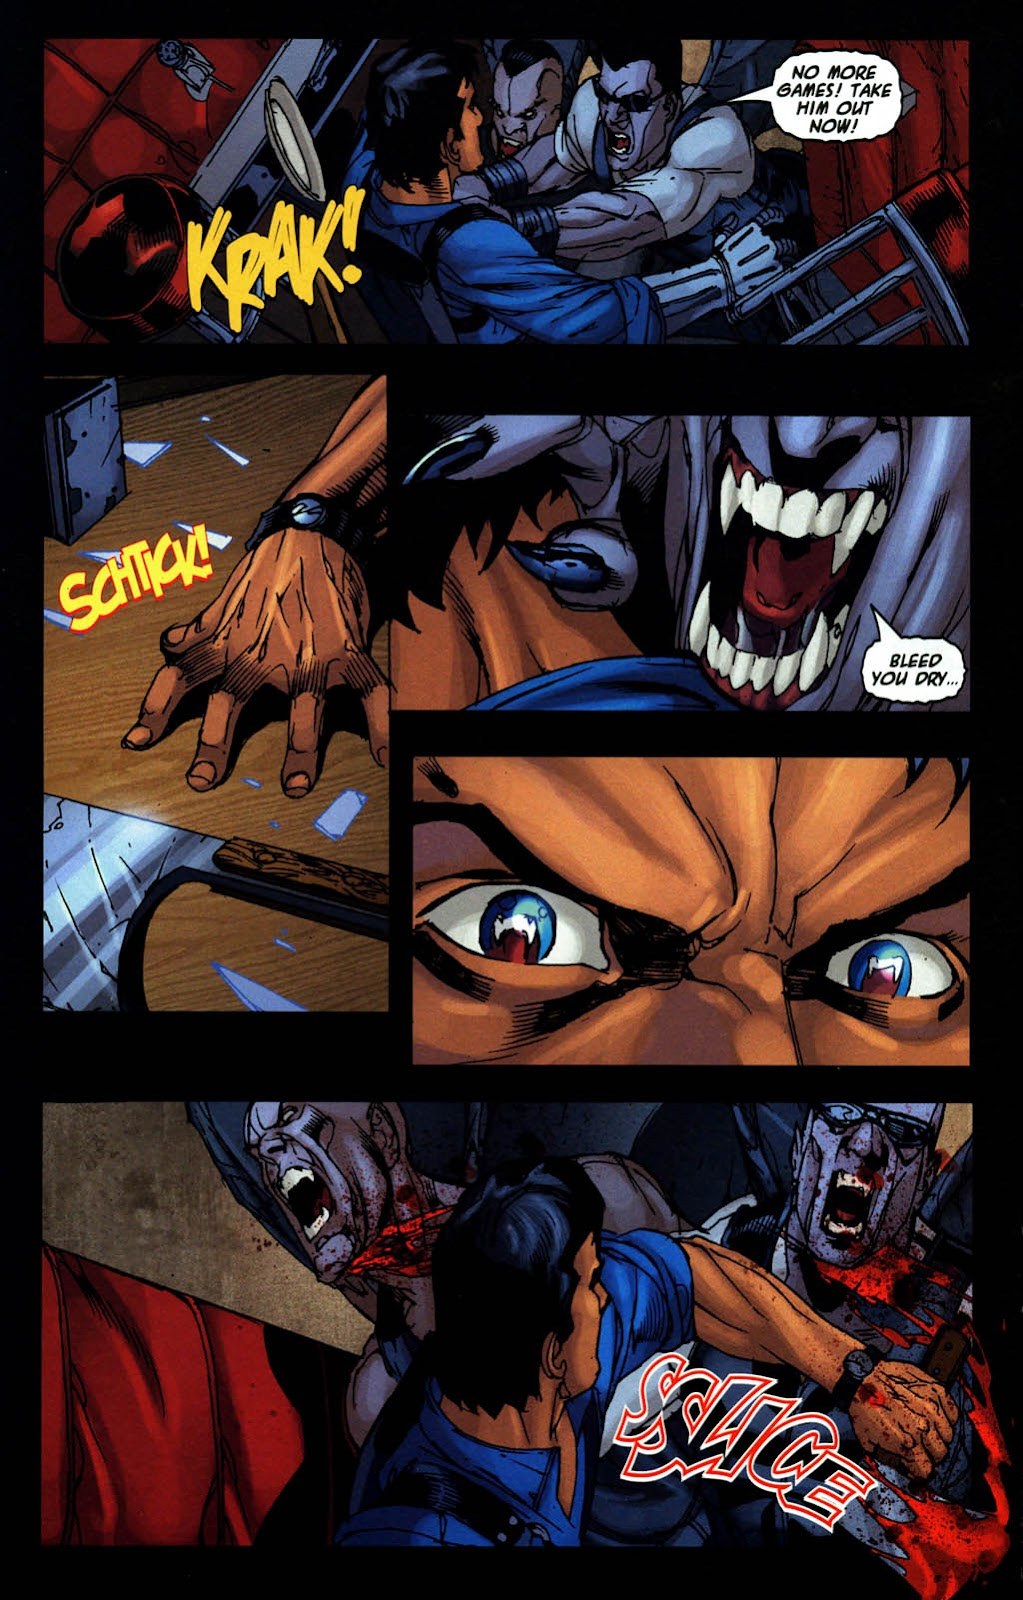 Army of Darkness (2006) Issue #9 #5 - English 12